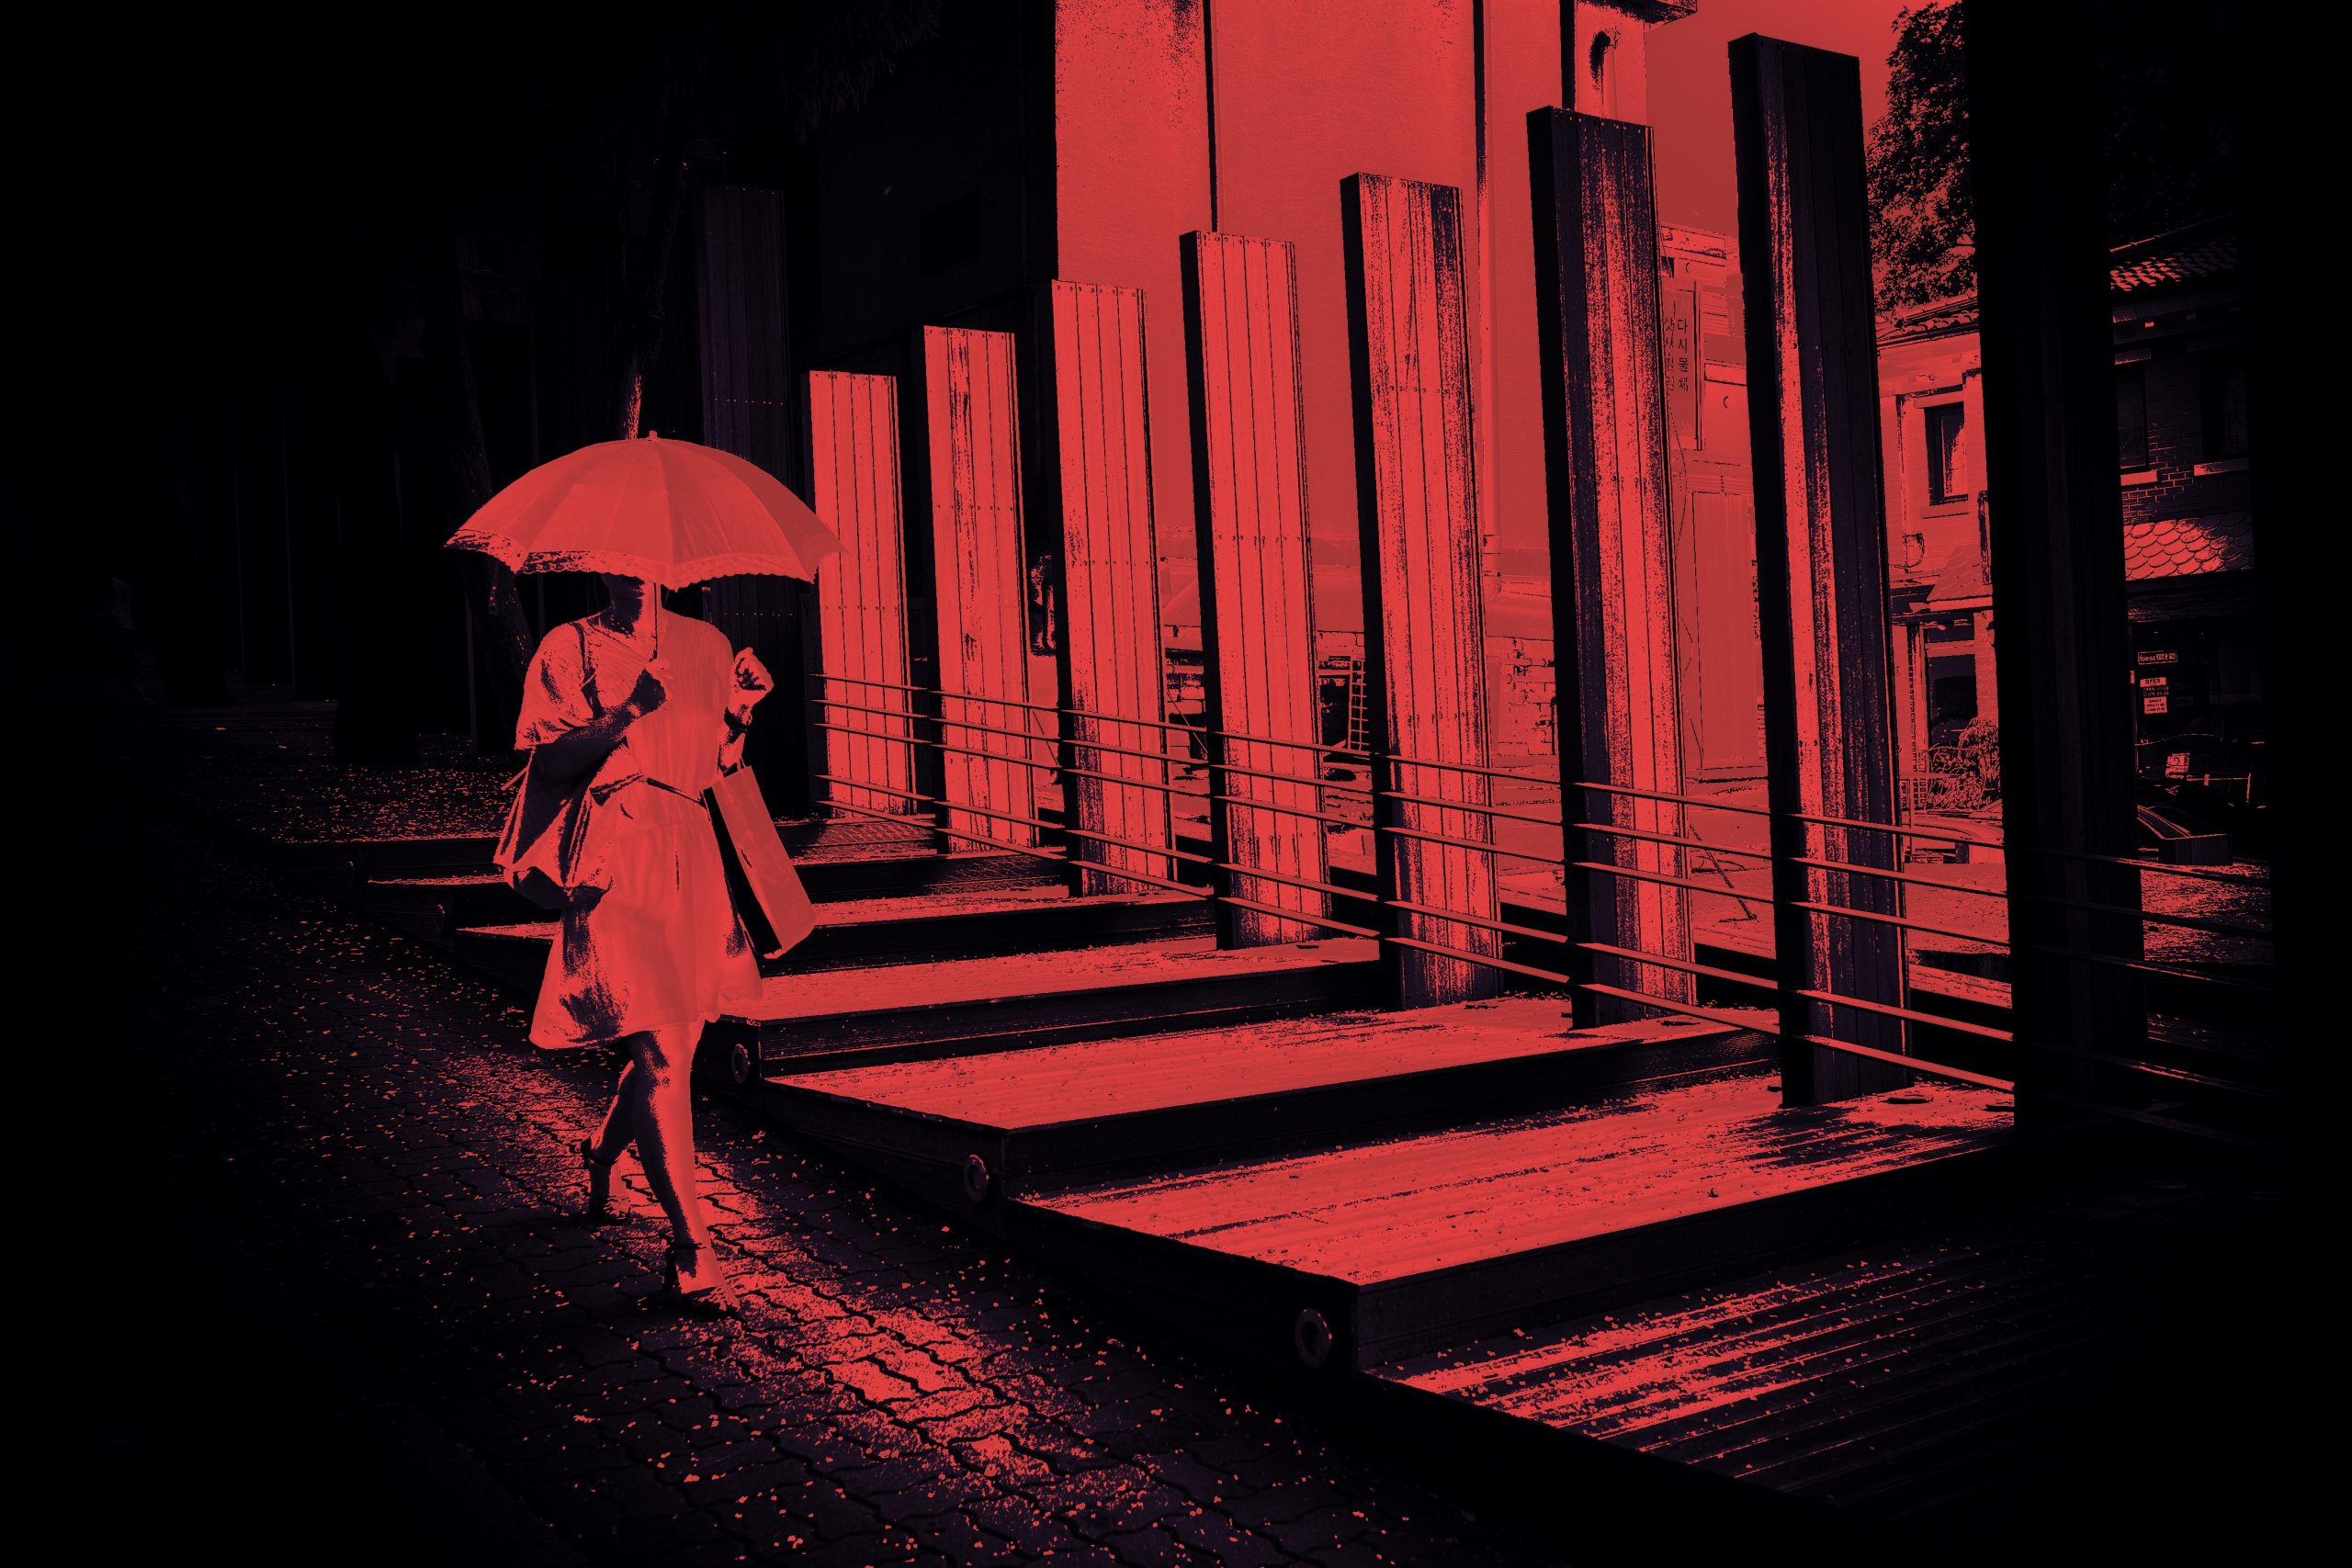 Crimson red umbrella ERIC KIM street photography